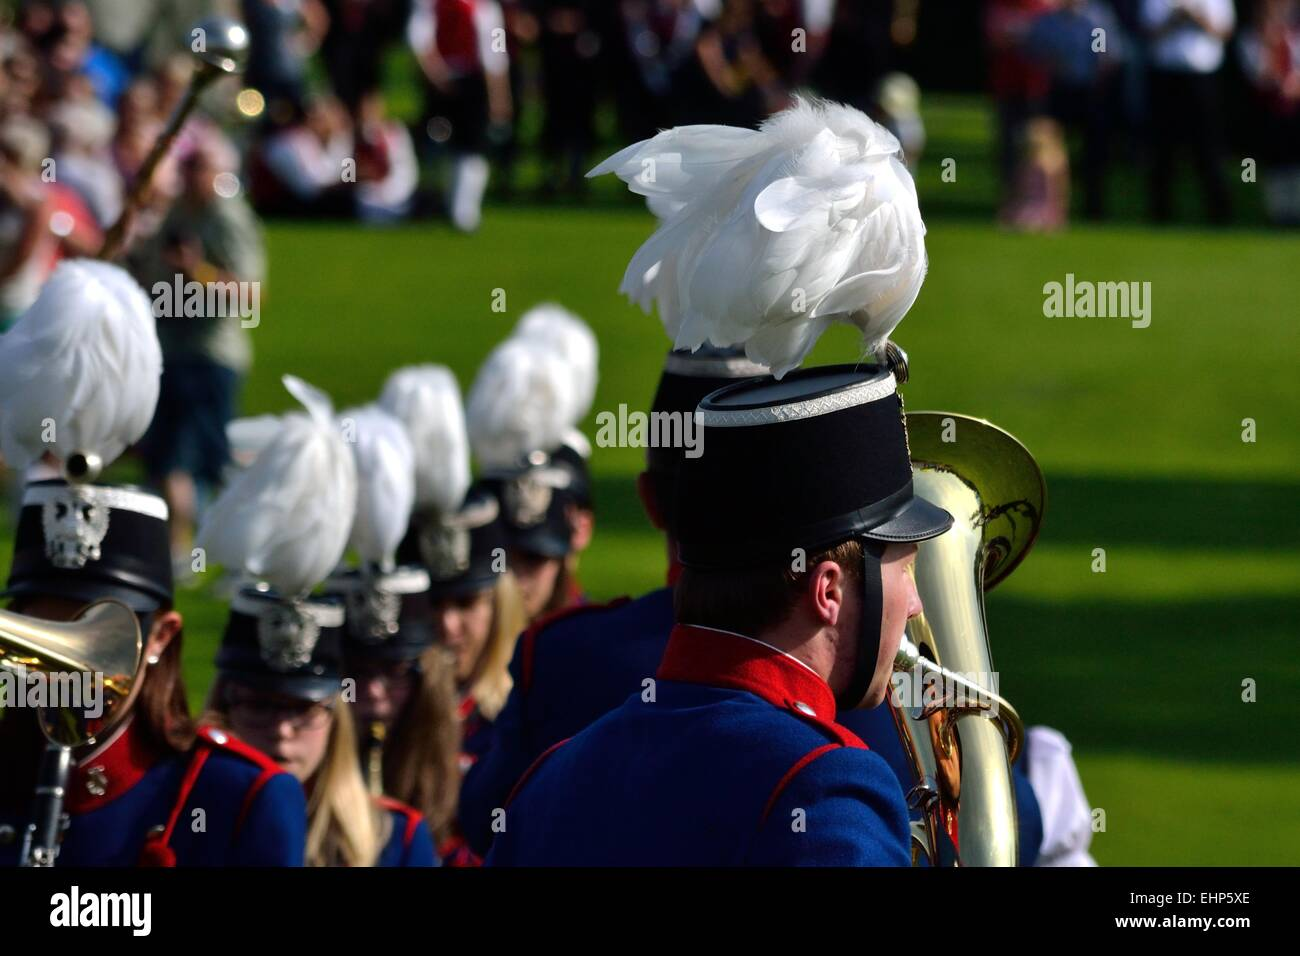 Musicians with special headdress - Stock Image